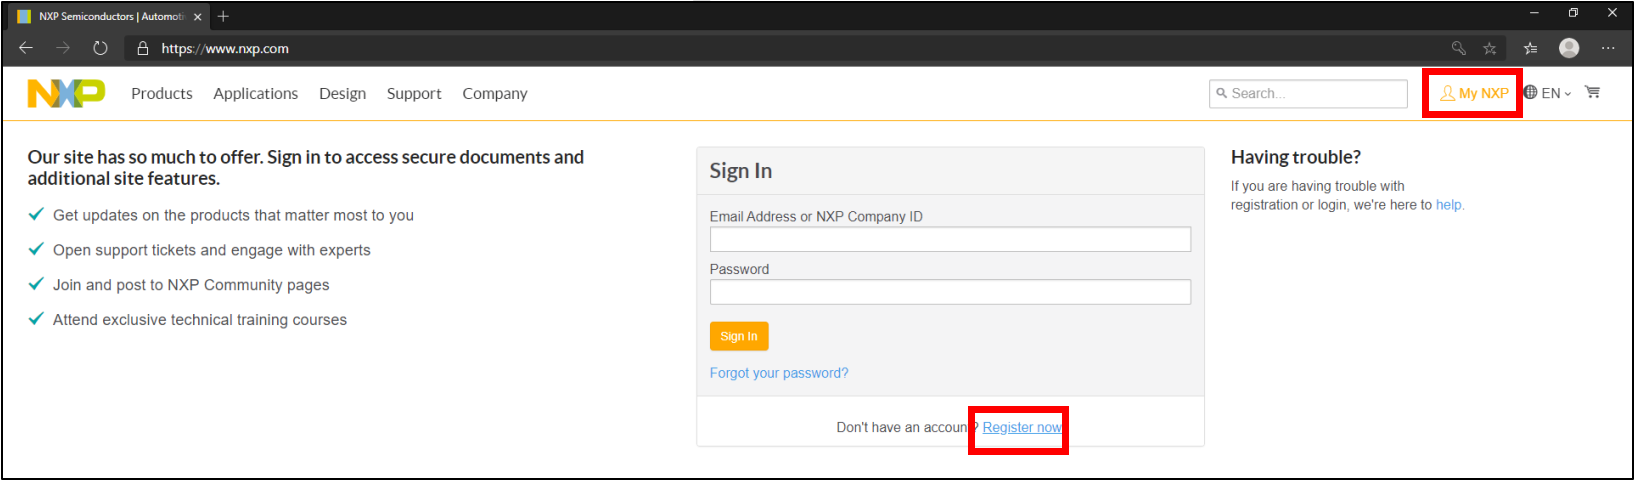 Fig 2.1 Register Account